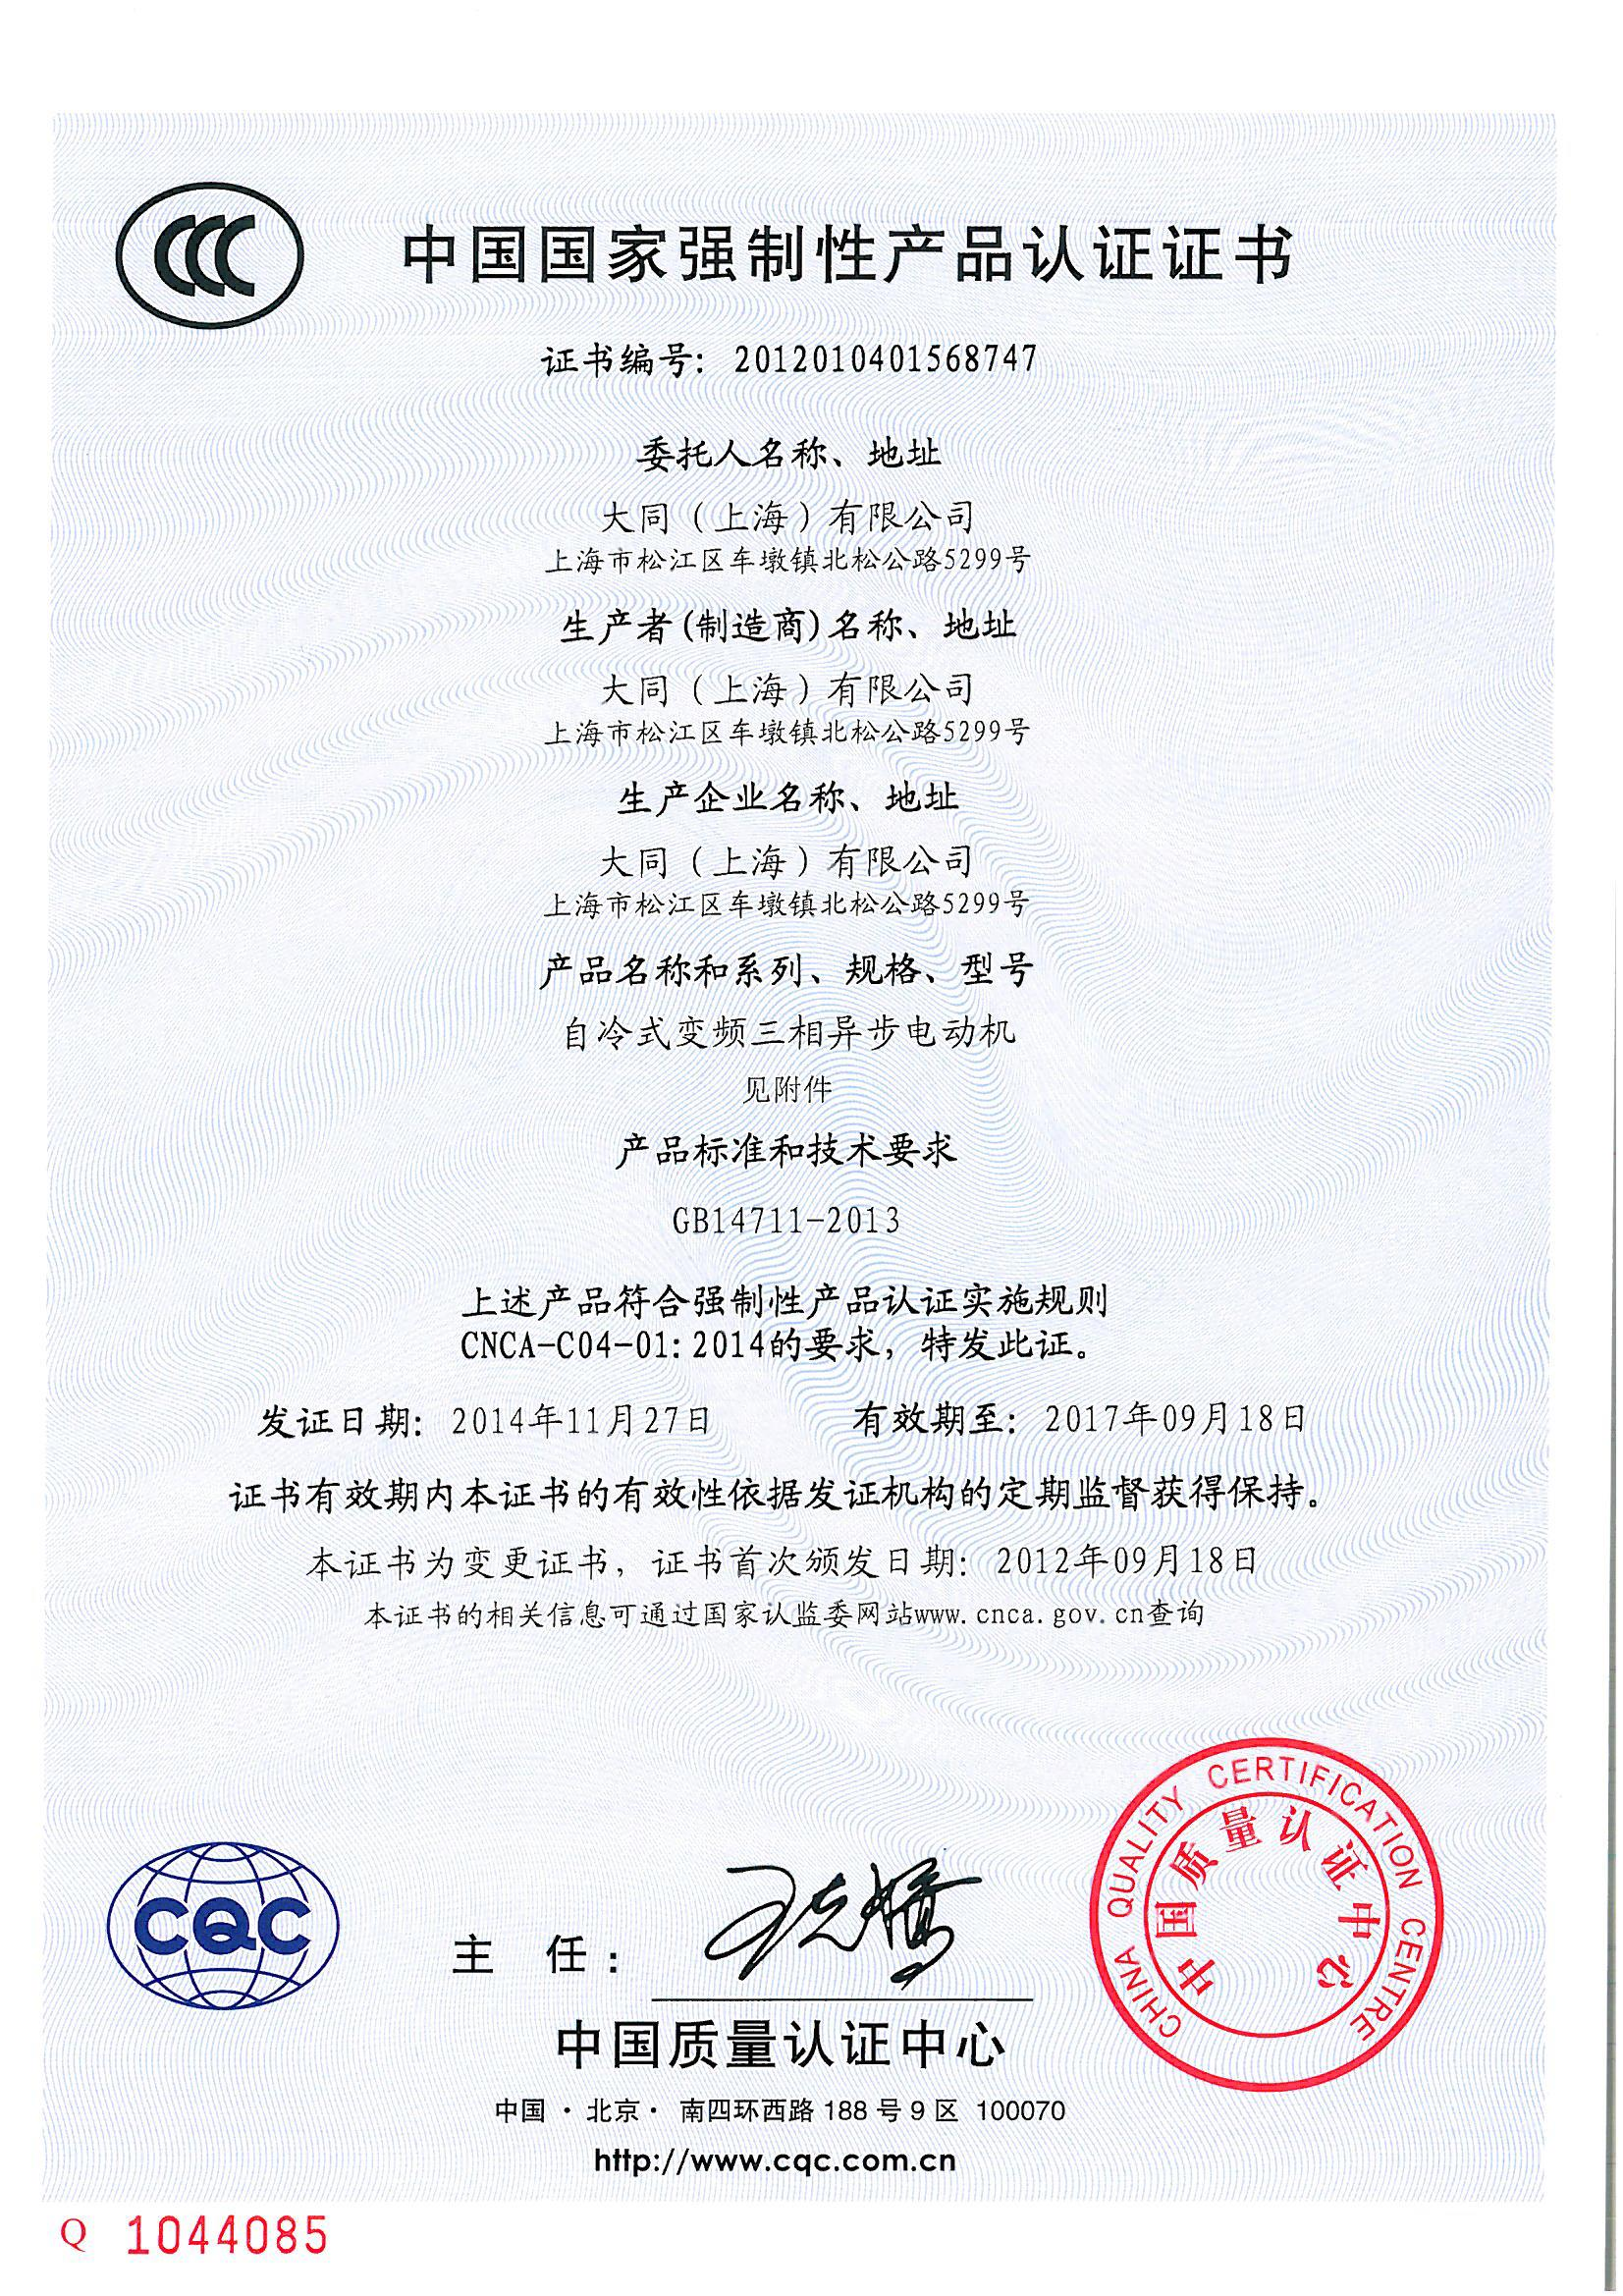 Quality qualification ccc certification for tbzb series motors xflitez Image collections